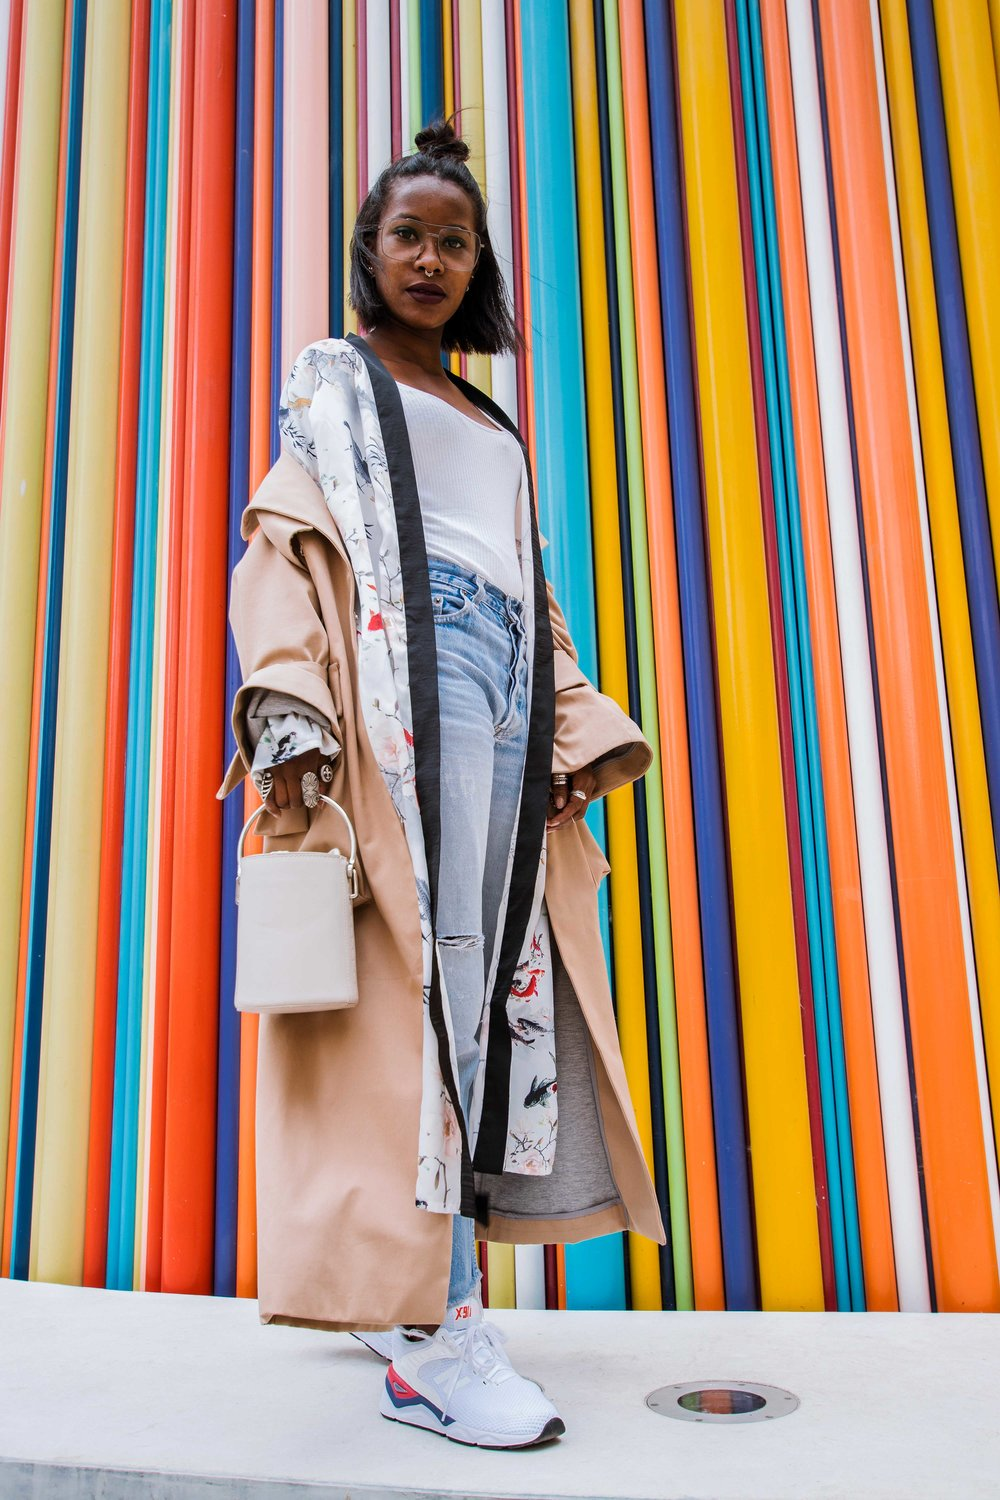 modest-fashion-clothing-lines-shop-online-street-style-kimono-trendy-superposition-sawour-bloggeuse-influenceuse-daisy-geo-thenilookatyou